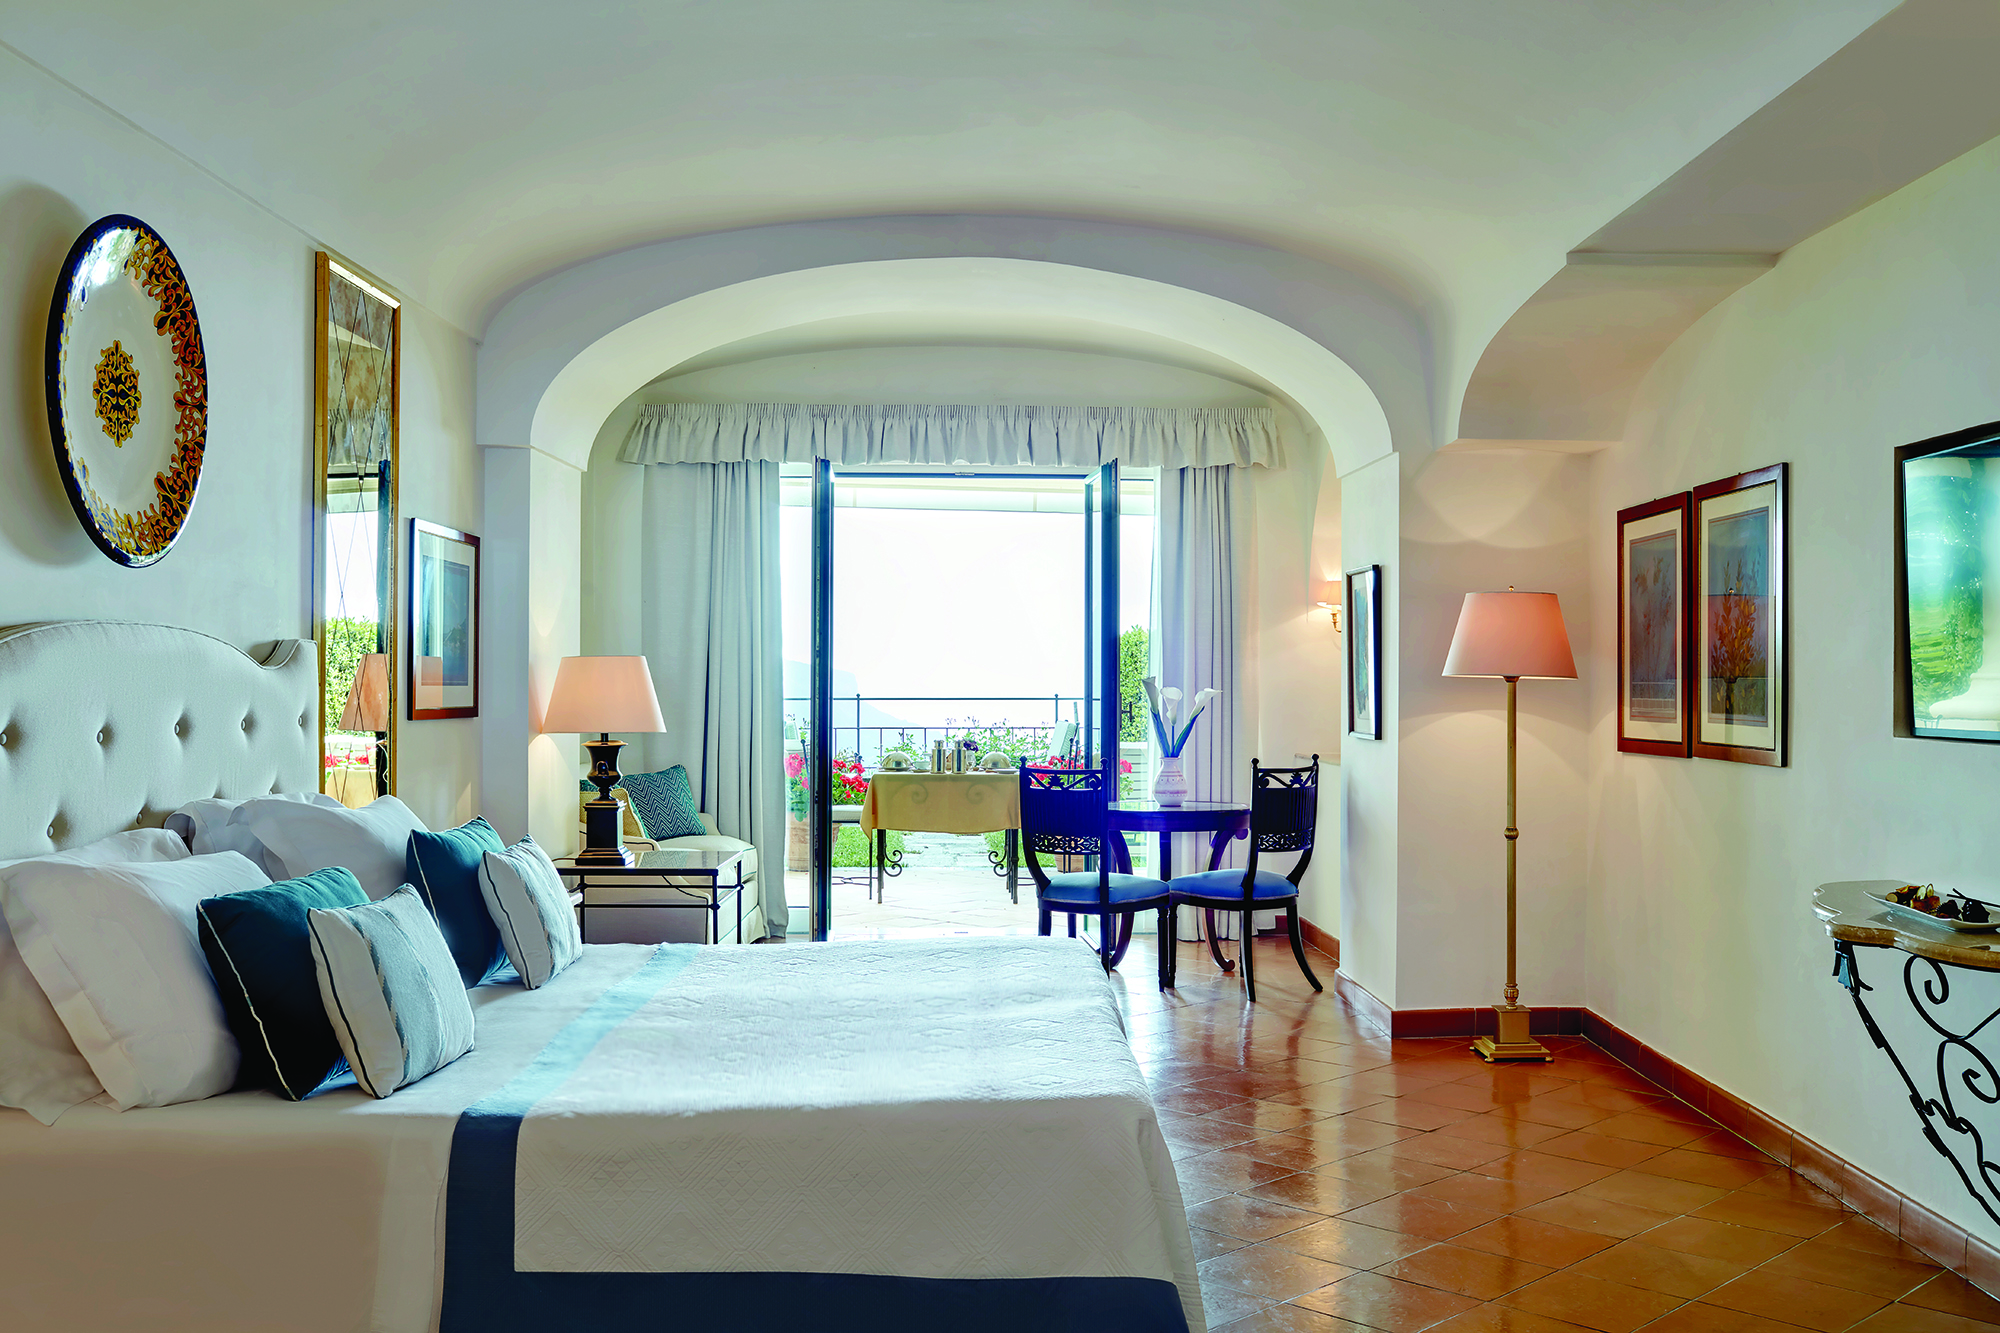 One of the beautiful suites at Belmond Hotel Caruso